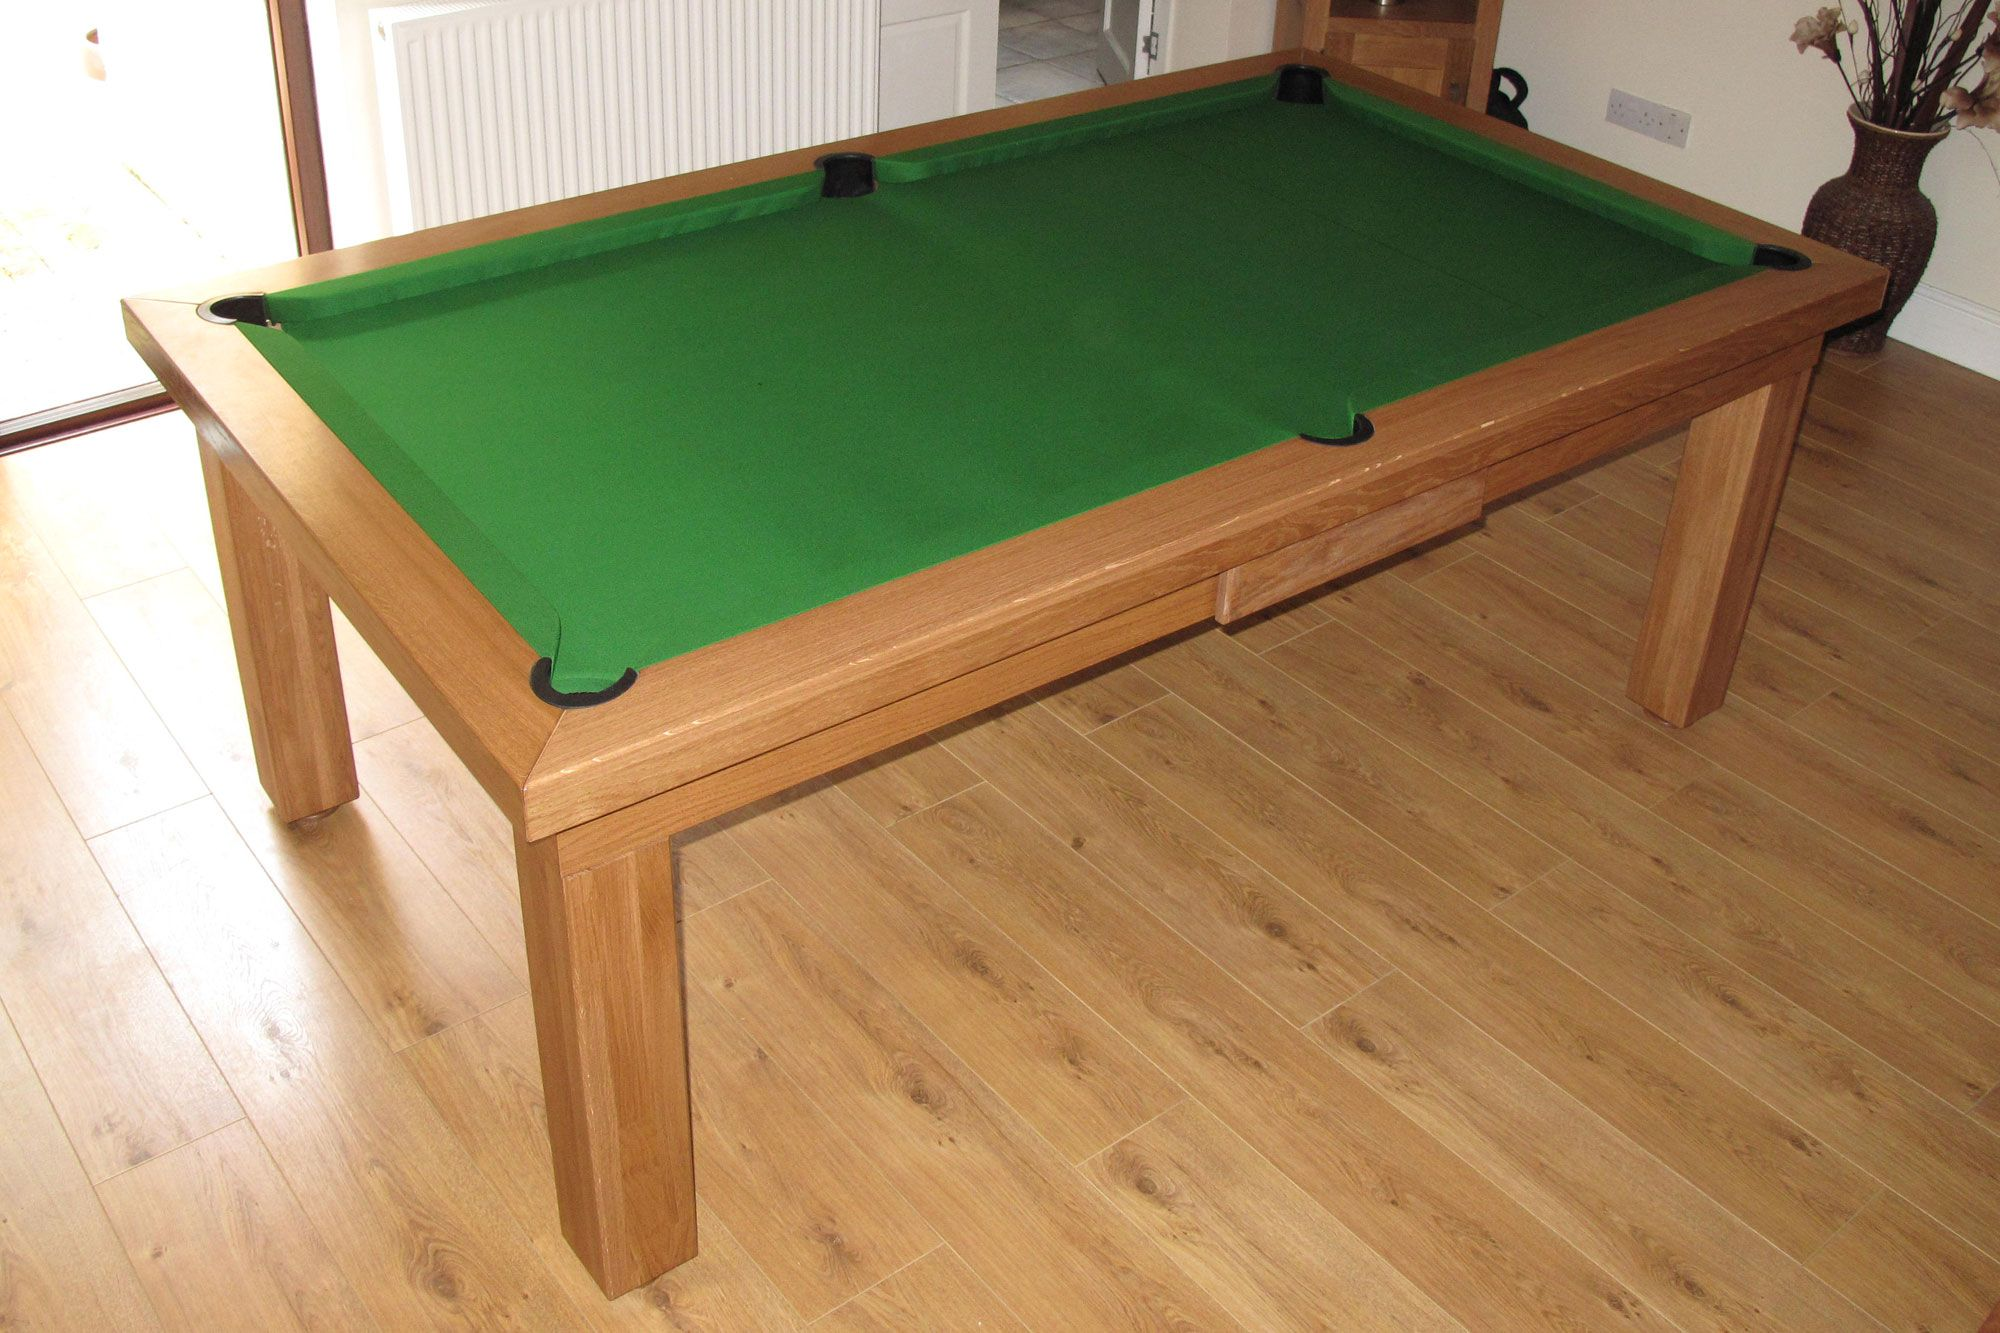 Contemporary Pool Table Range - Oak colour 5 with Hainsworth Smart Olive cloth. www.luxury-pool-tables.co.uk